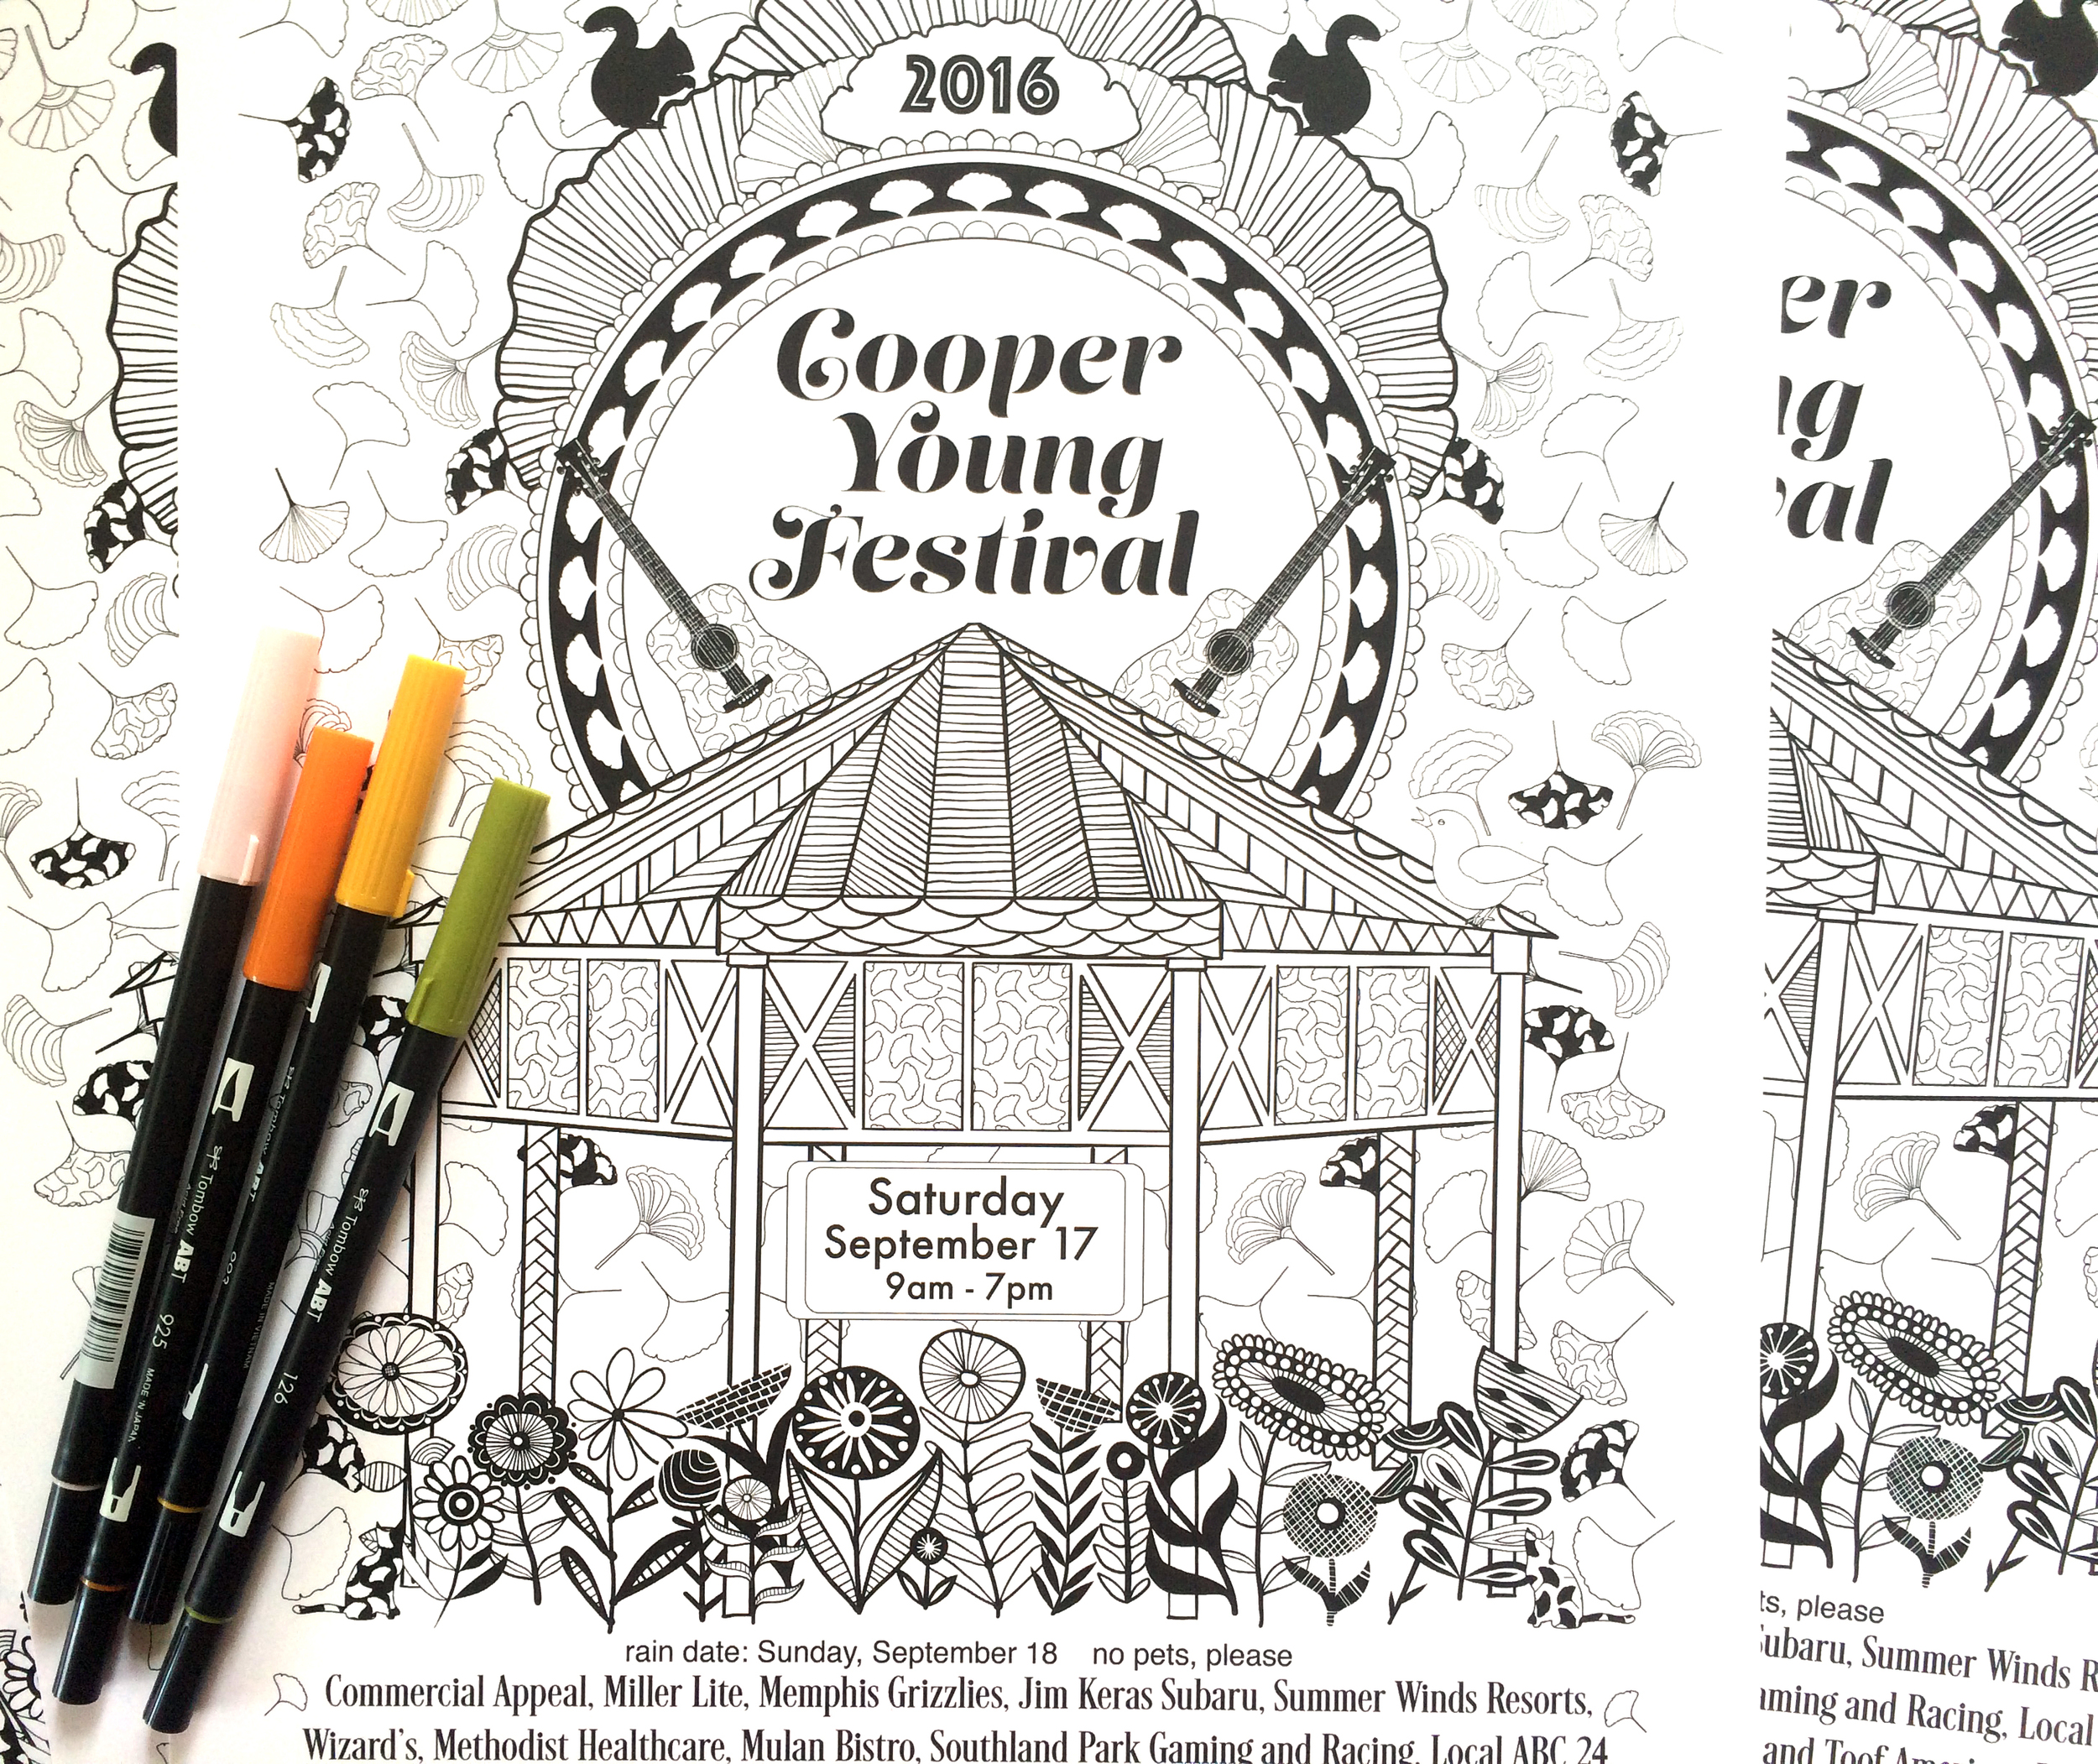 Cooper Young Festival Coloring Poster 2016 by Jenean Morrison